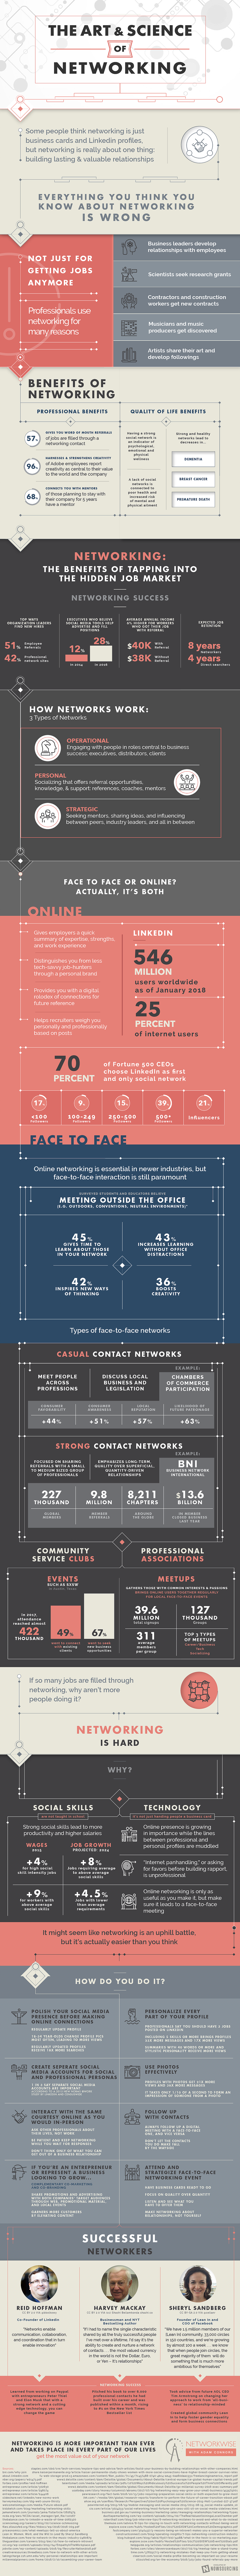 The Art and Science of Networking (Infographic) - NewsTimes